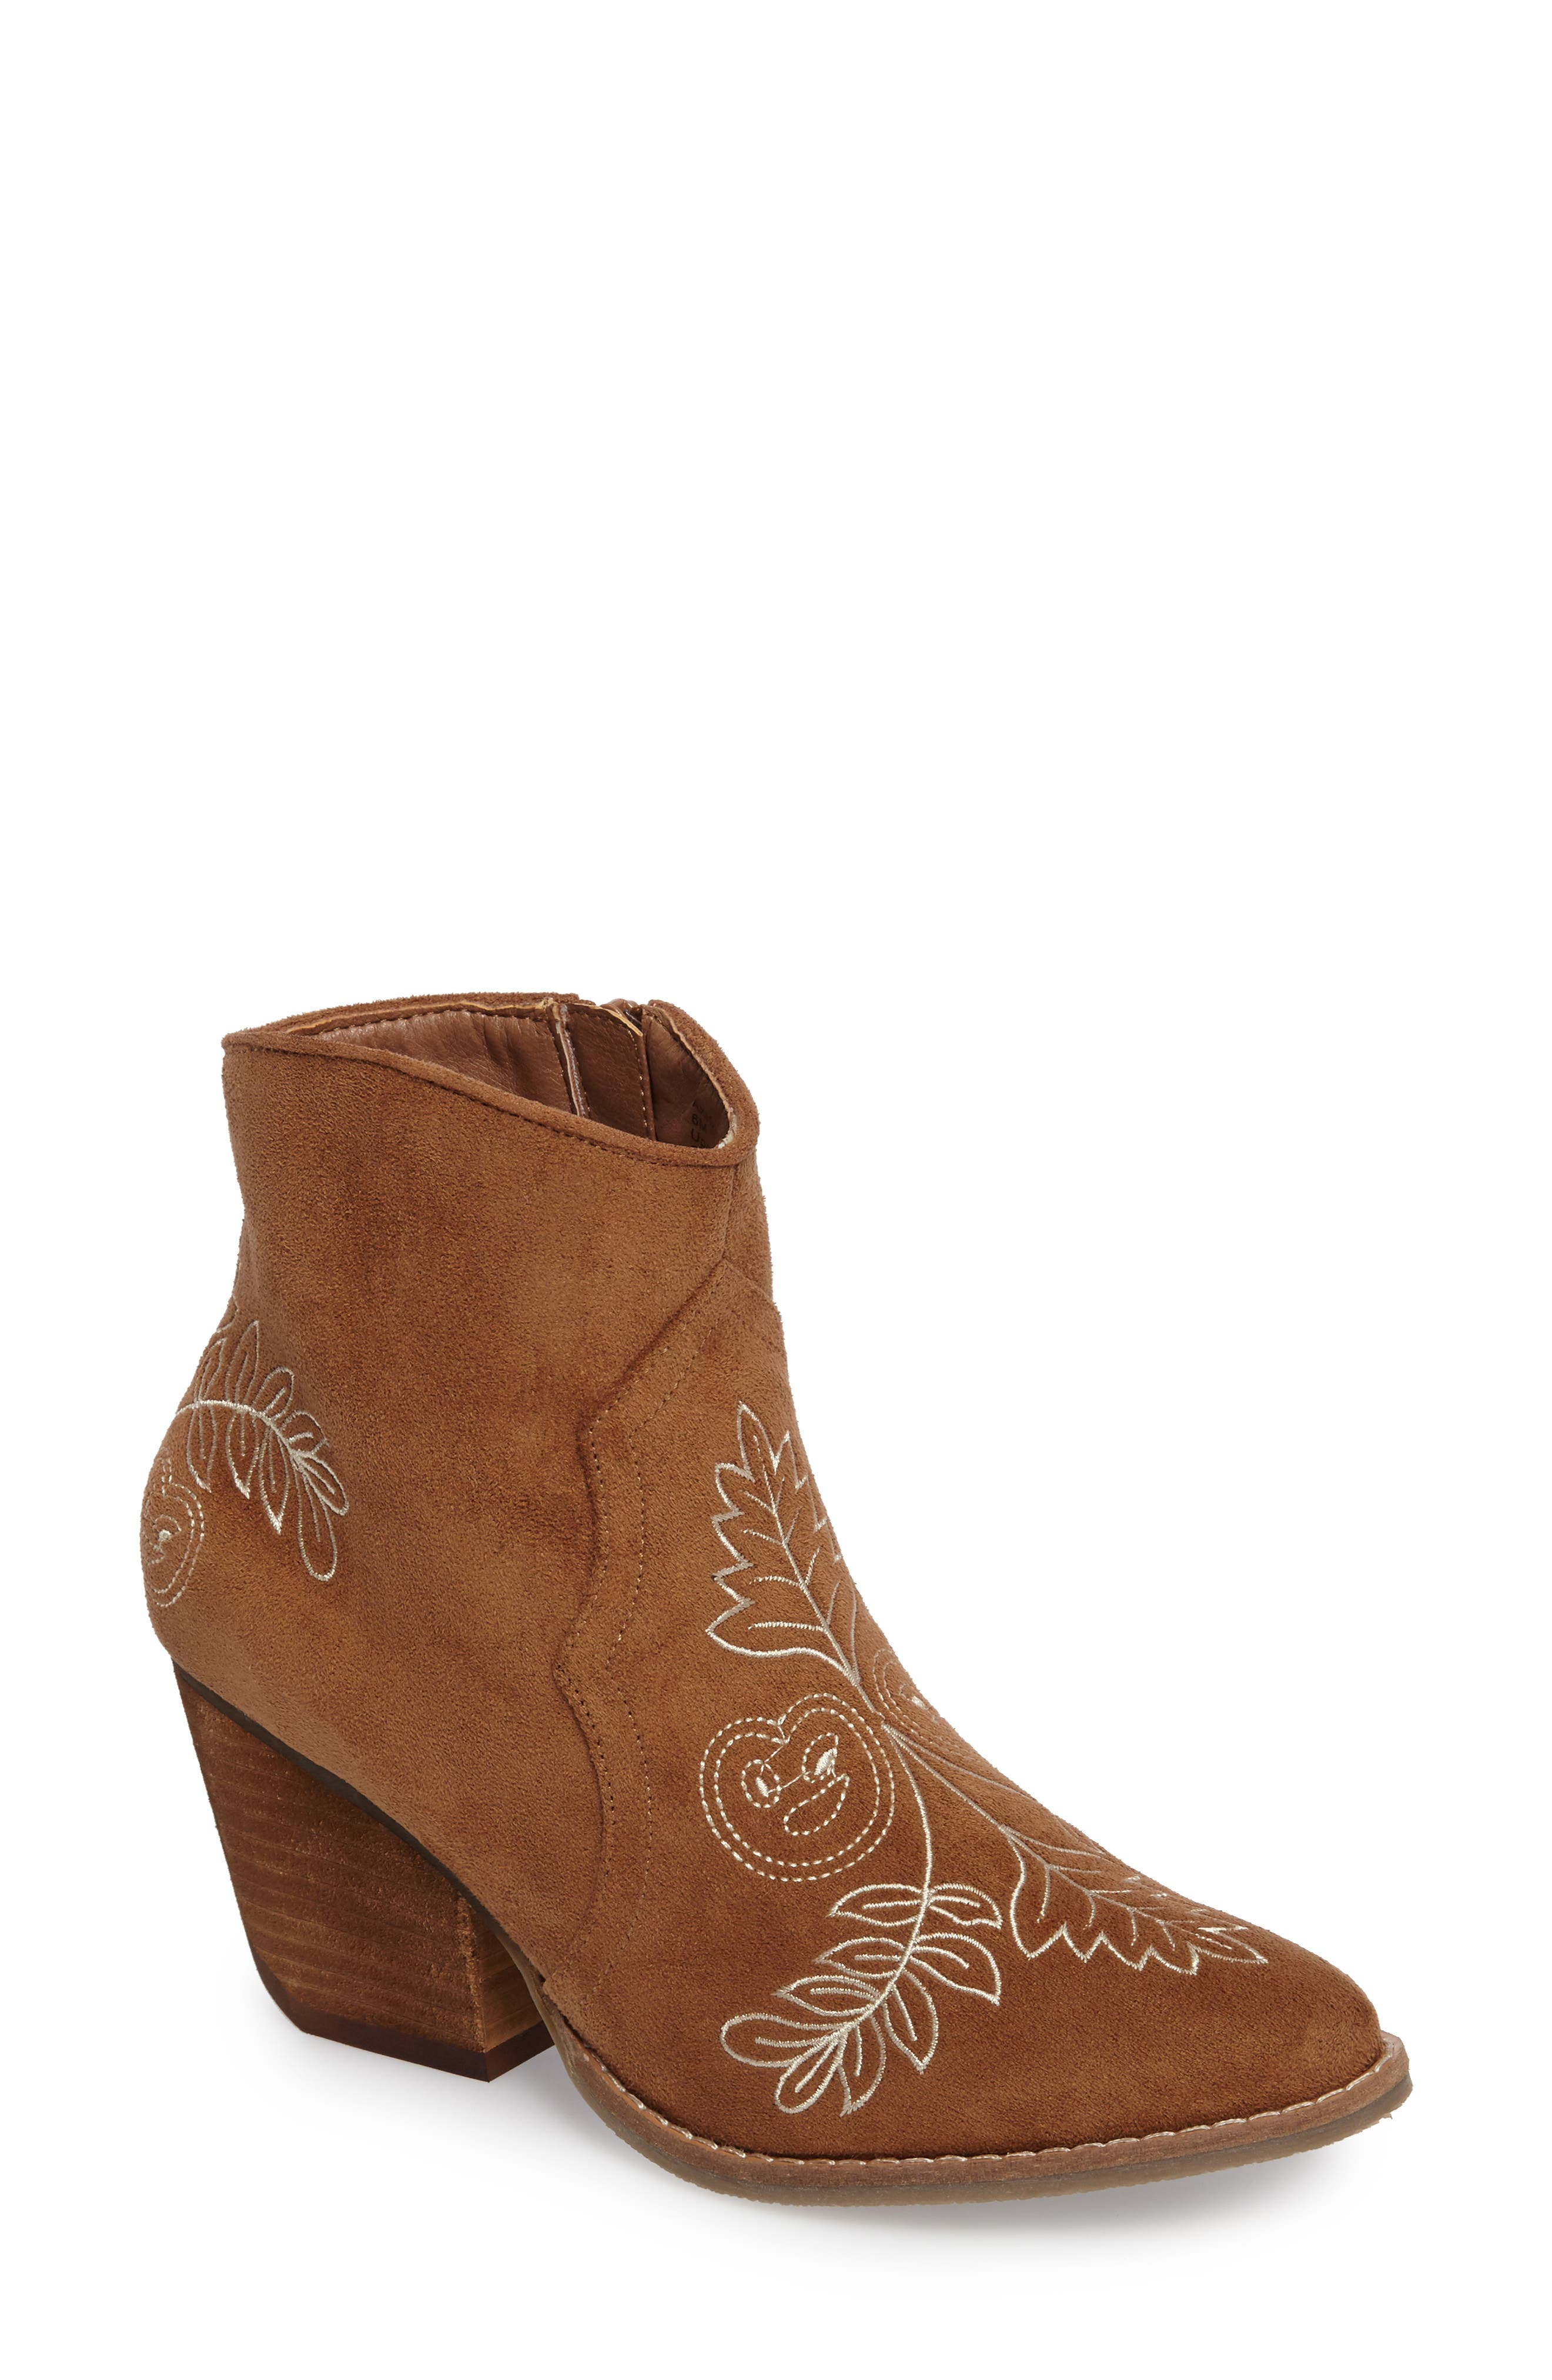 Axis Embroidered Bootie,                             Main thumbnail 1, color,